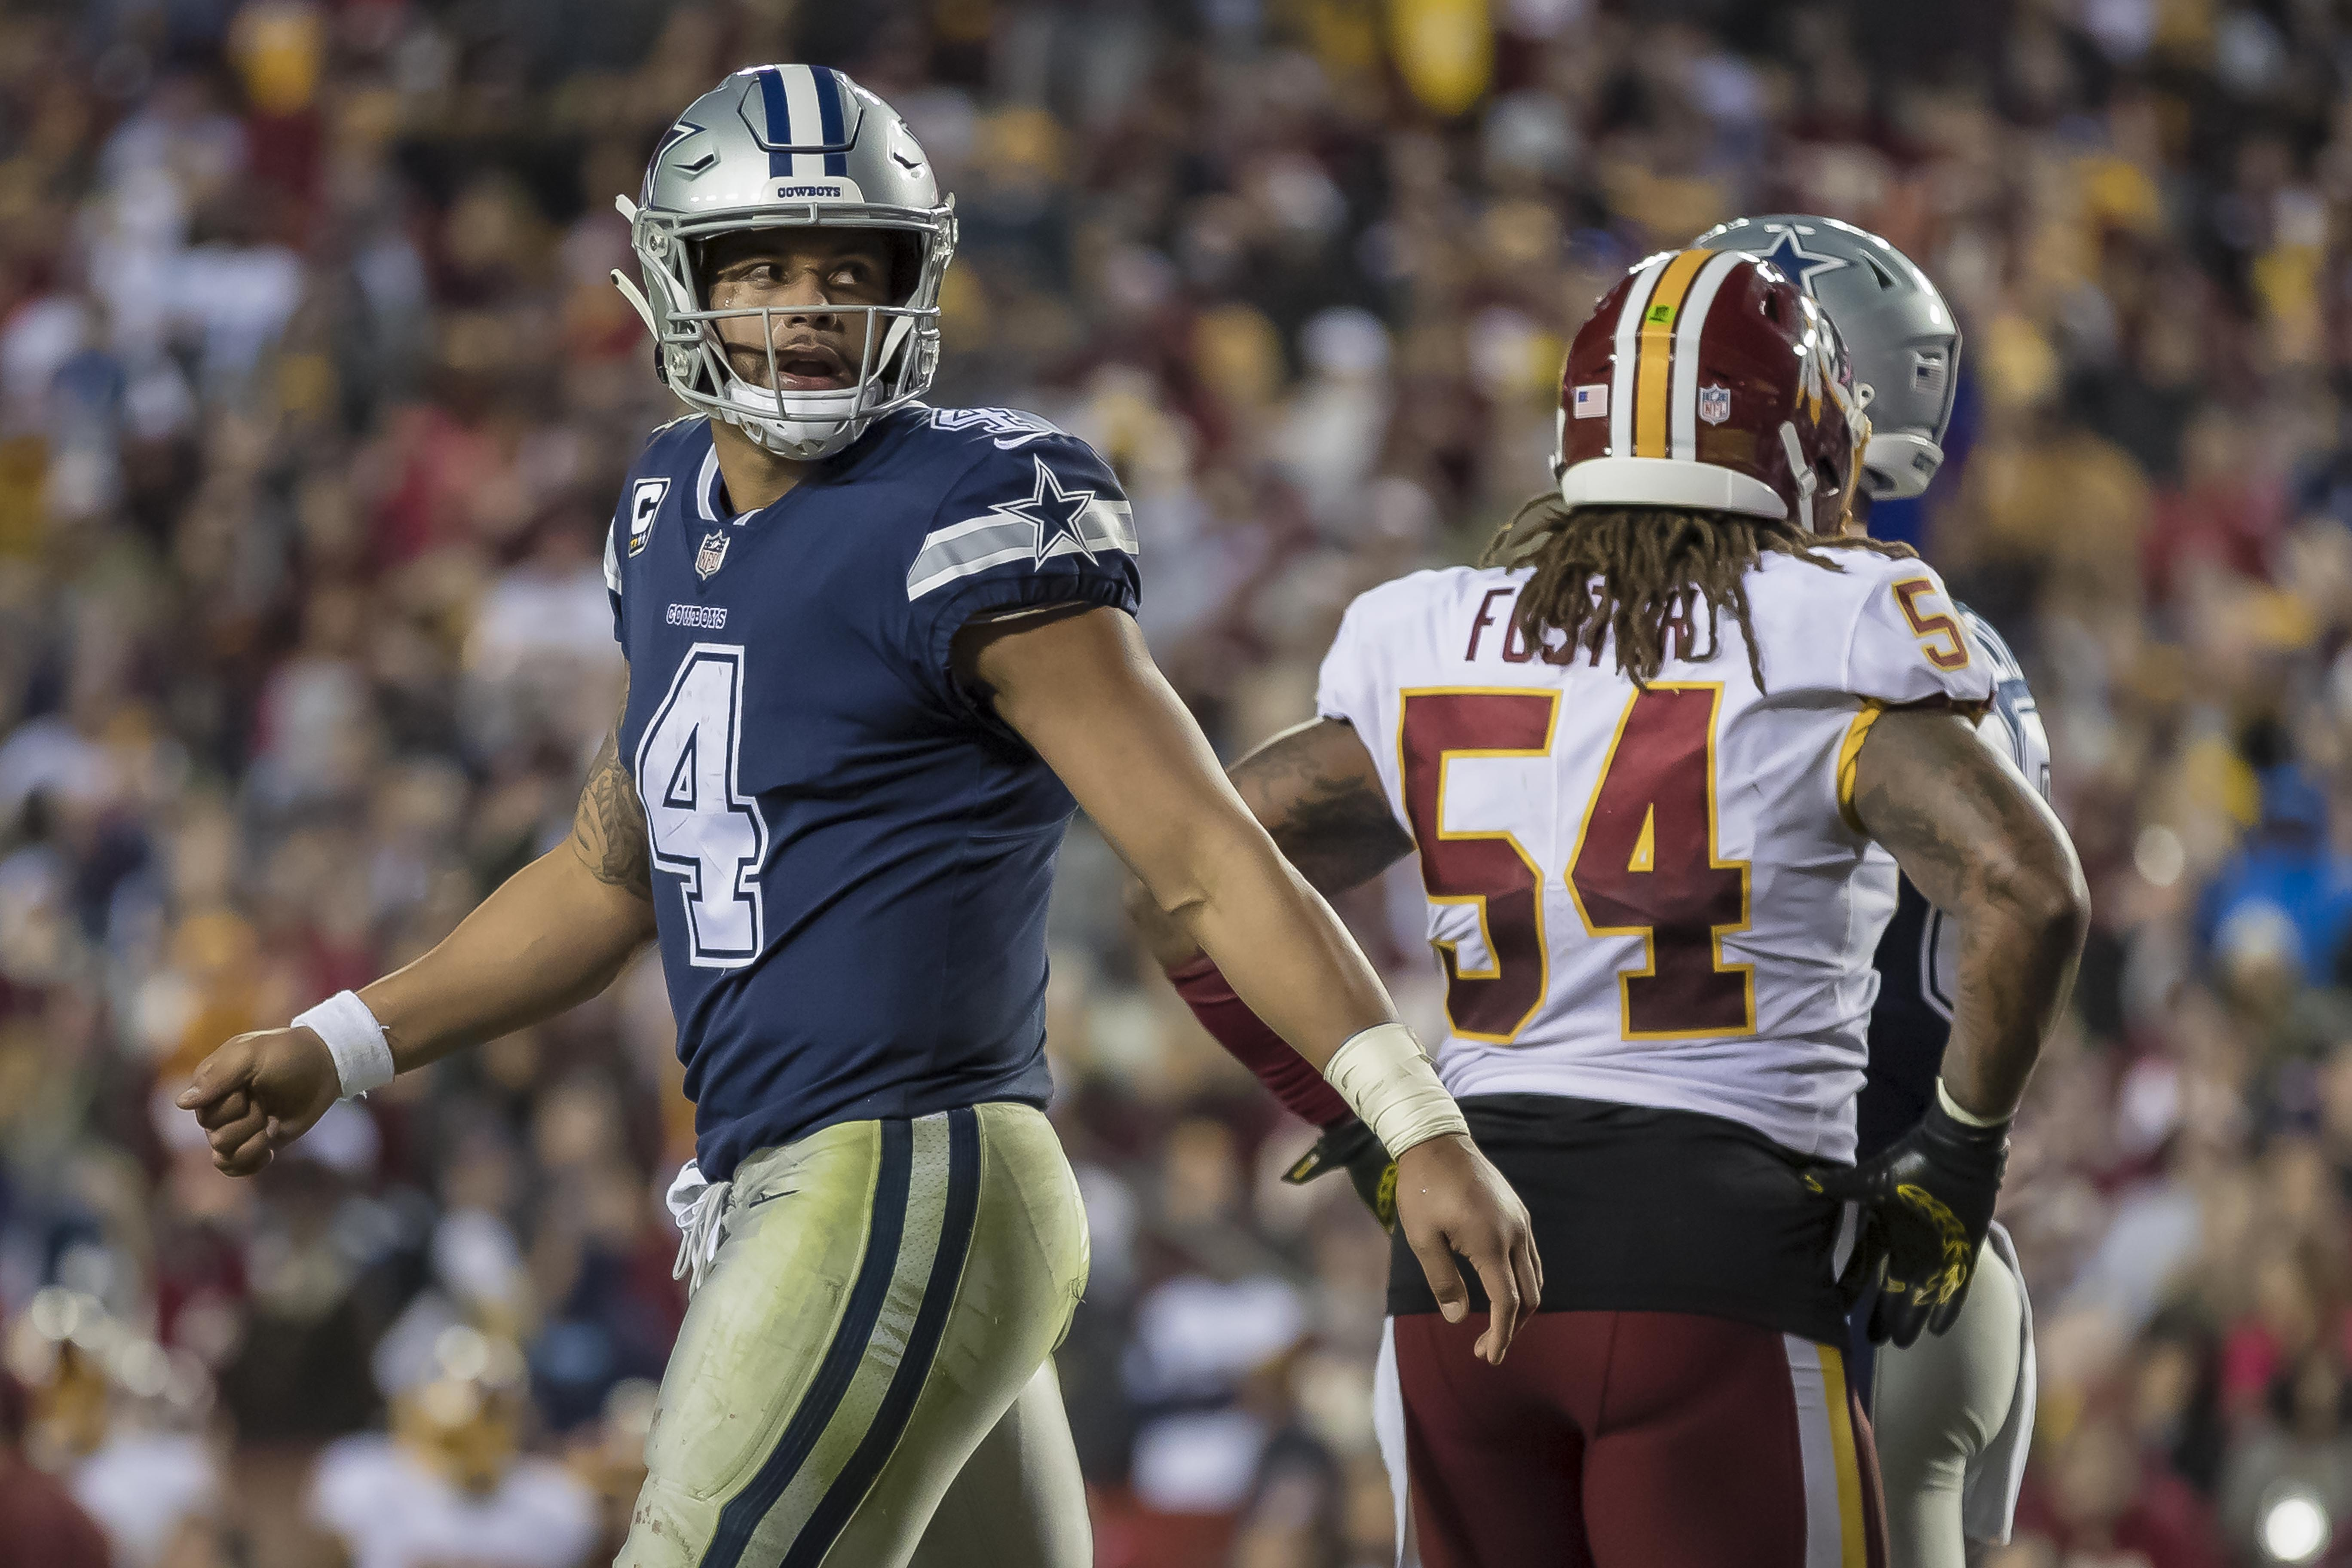 Oct 21, 2018; Landover, MD, USA; Dallas Cowboys quarterback Dak Prescott (4) looks on after scoring a touchdown against the Washington Redskins during the second half at FedEx Field. Mandatory Credit: Scott Taetsch-USA TODAY Sports